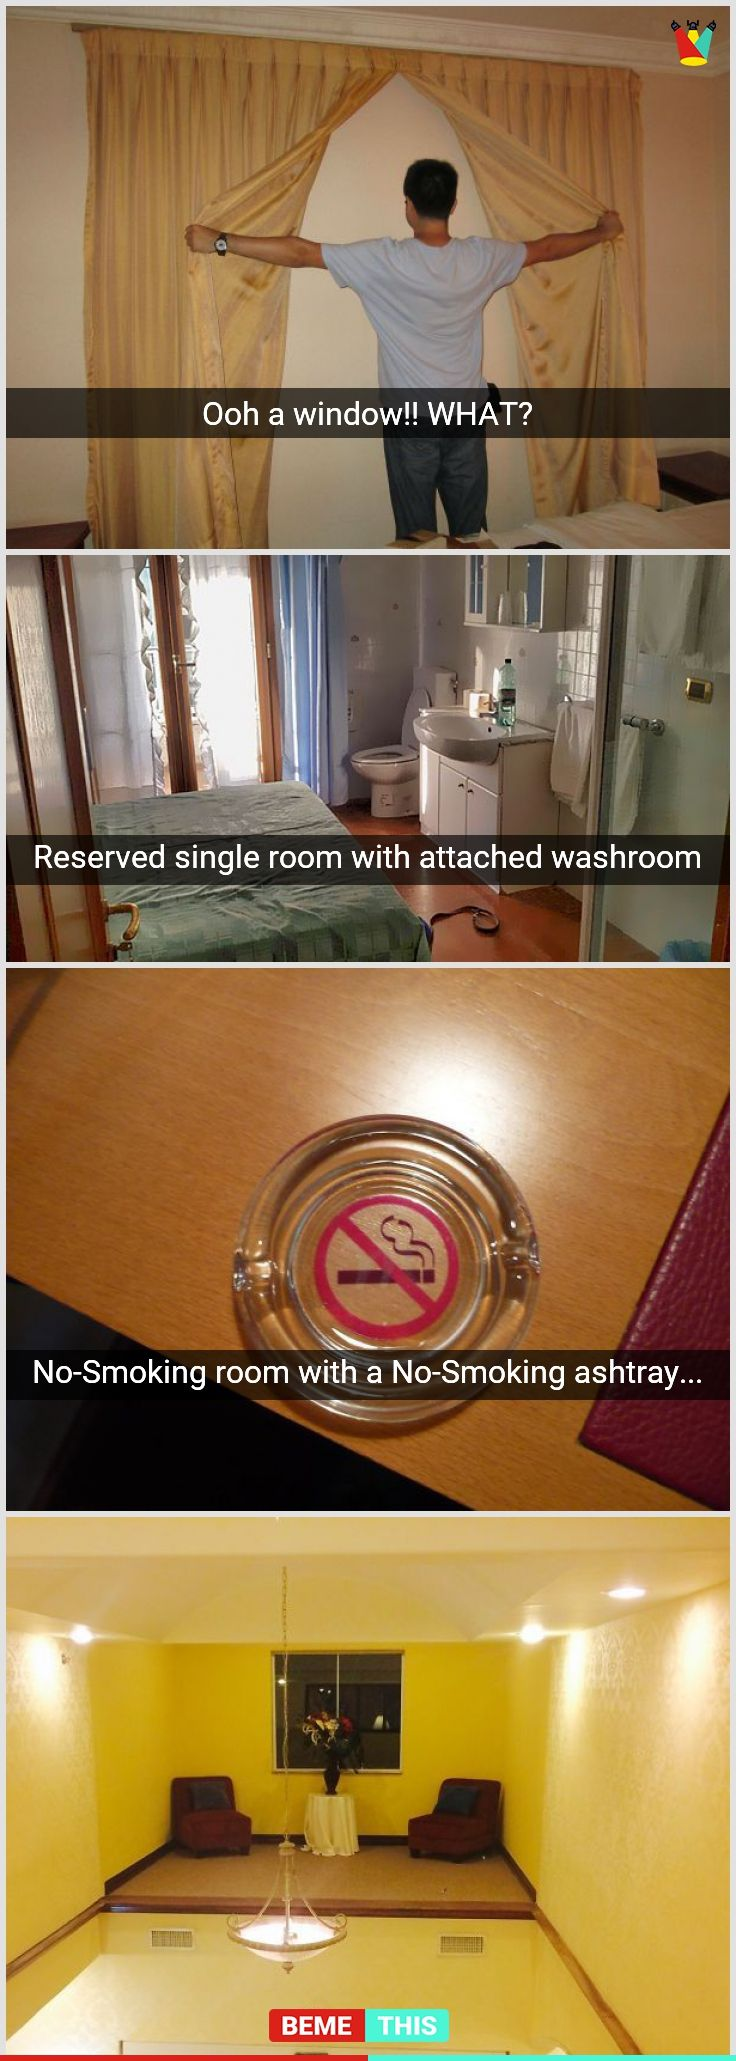 10+ Hotel Designs That Fail Hilariously #funnypictures #designfails #hotelnightmare #bemethis